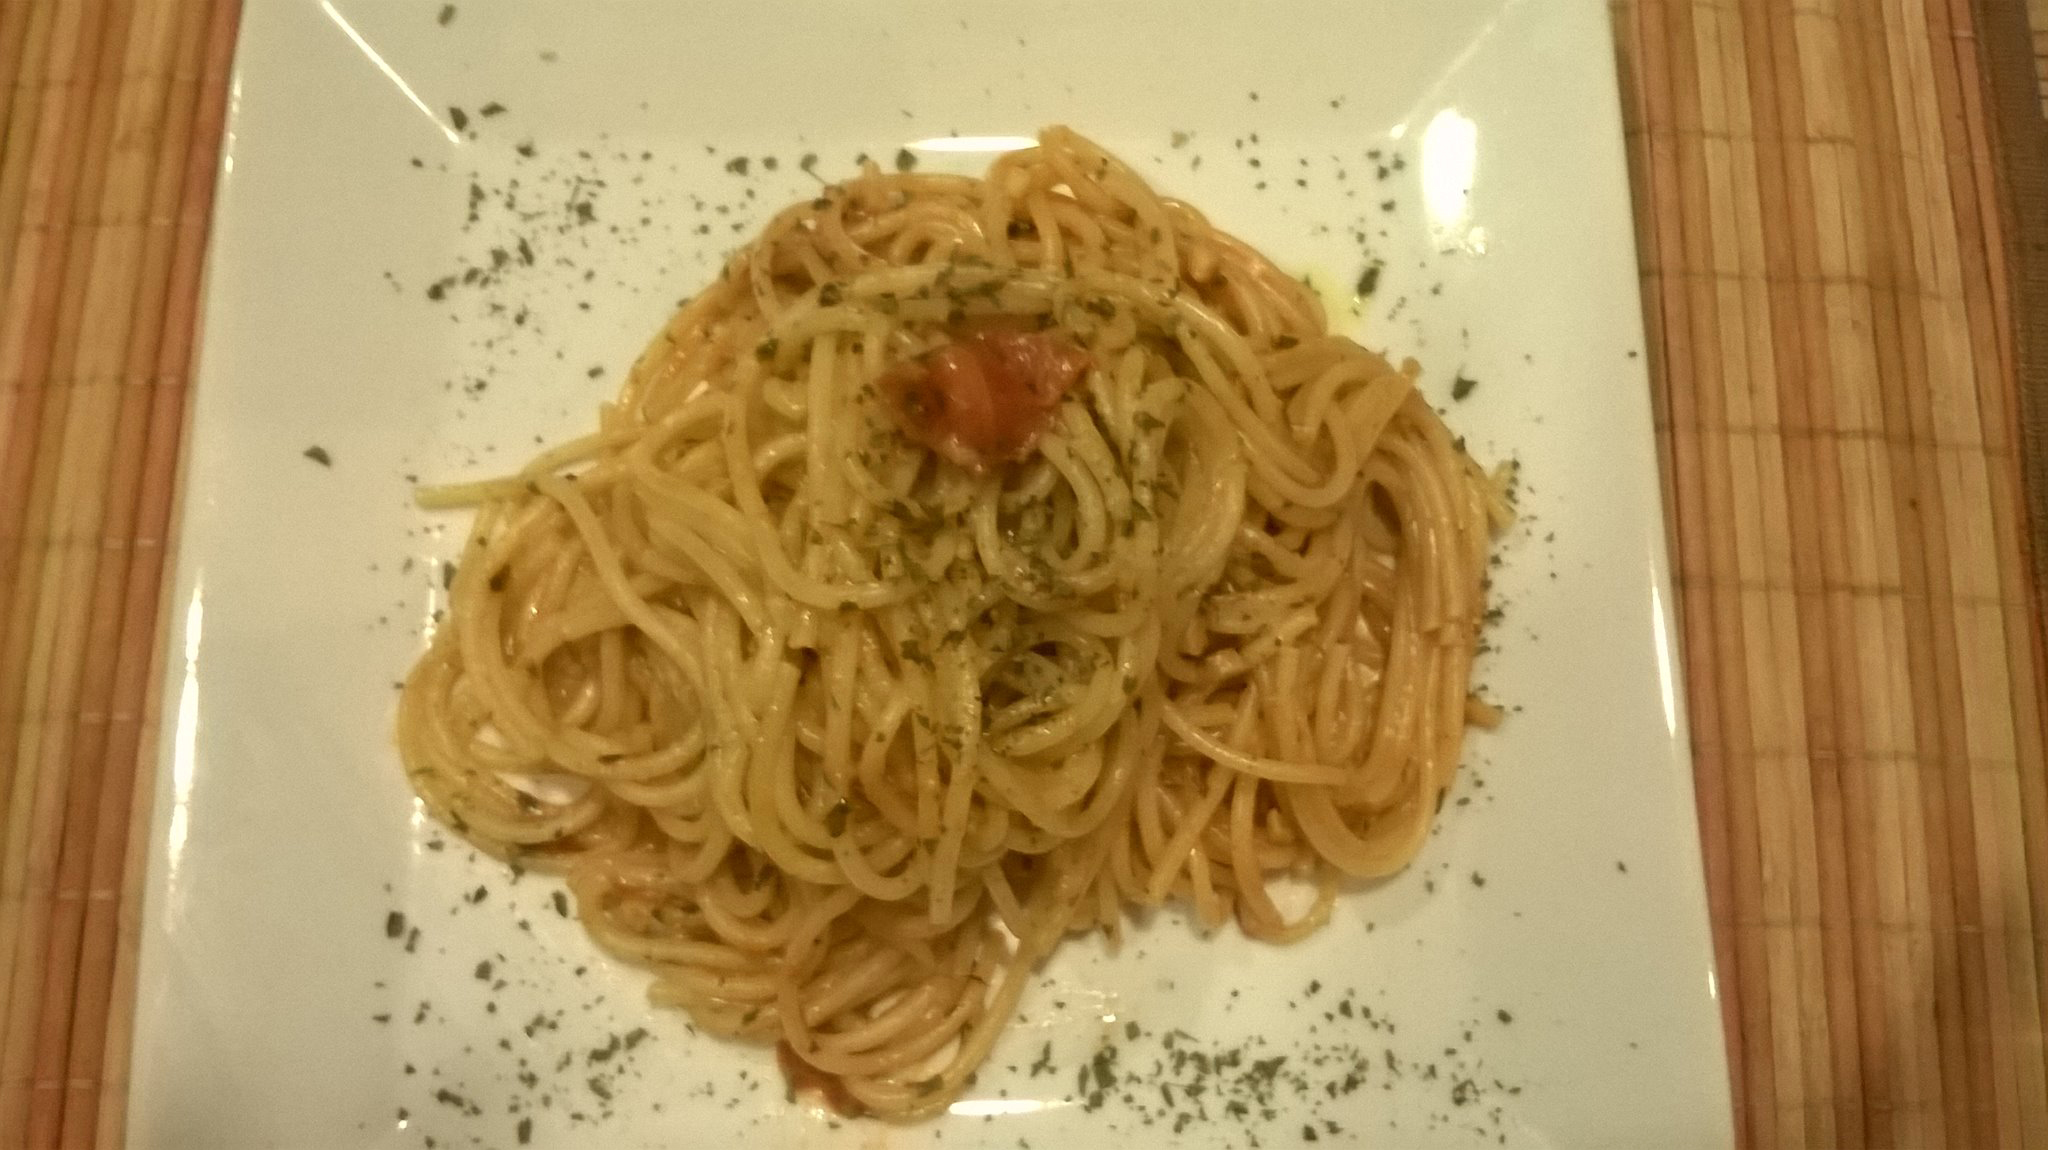 Spaghetti with sea urchins. Photograph by Pauline Spiteri Bugeja